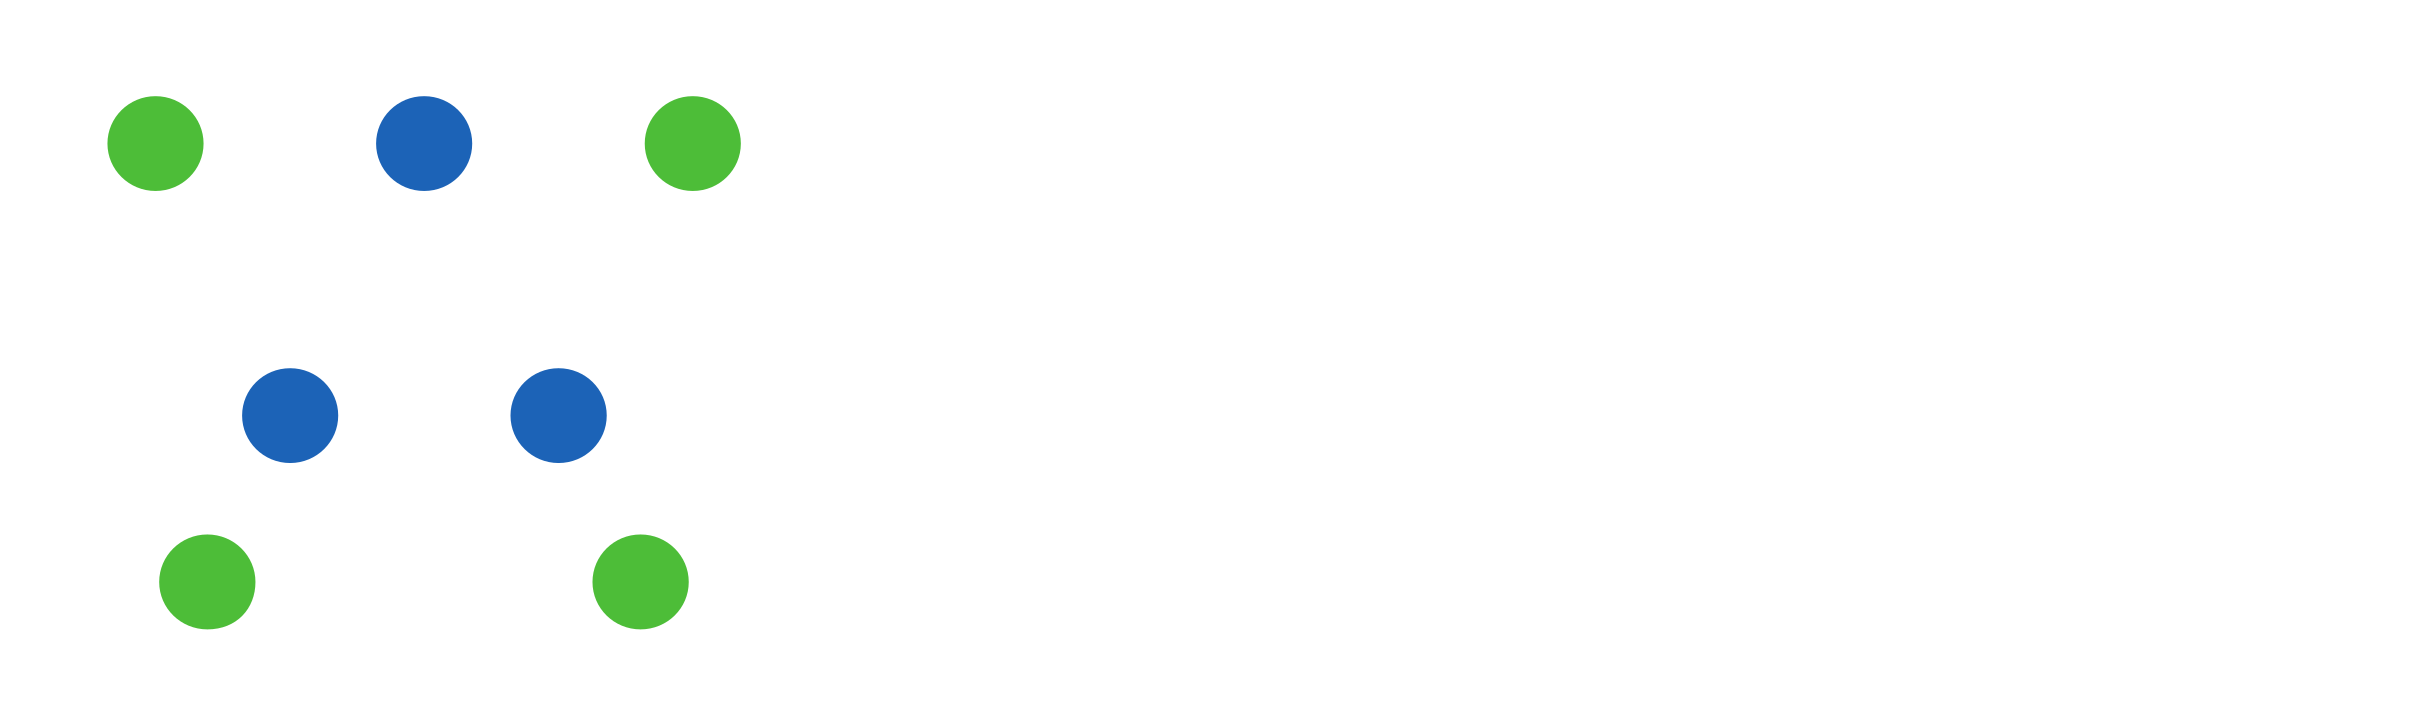 Waltzing Atoms Forum